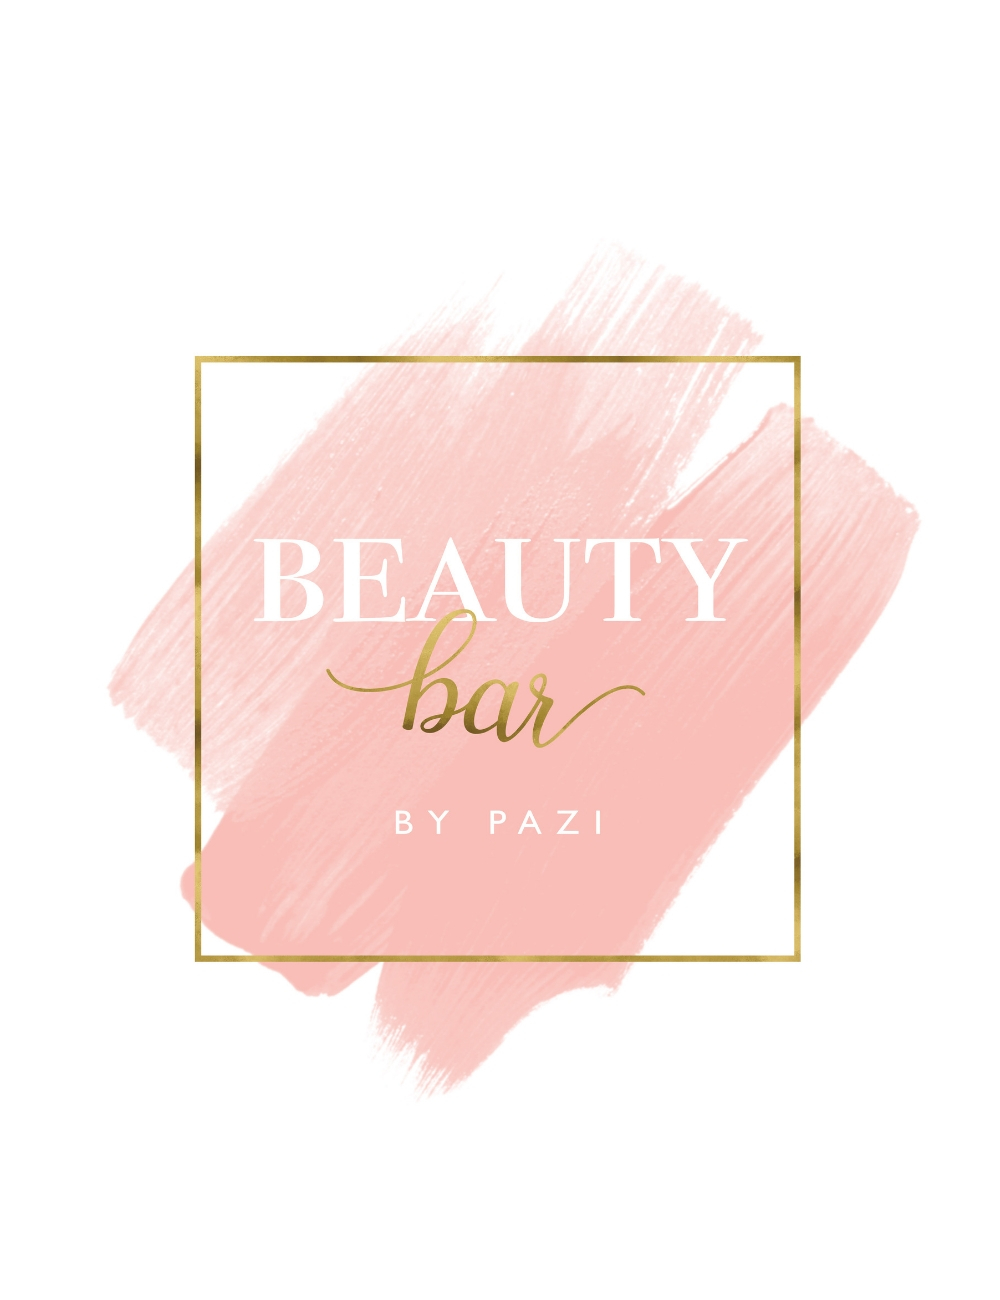 Beauty Bar by Pazi, lashes Brows, Hyaluron Unterspritzung Nürnberg